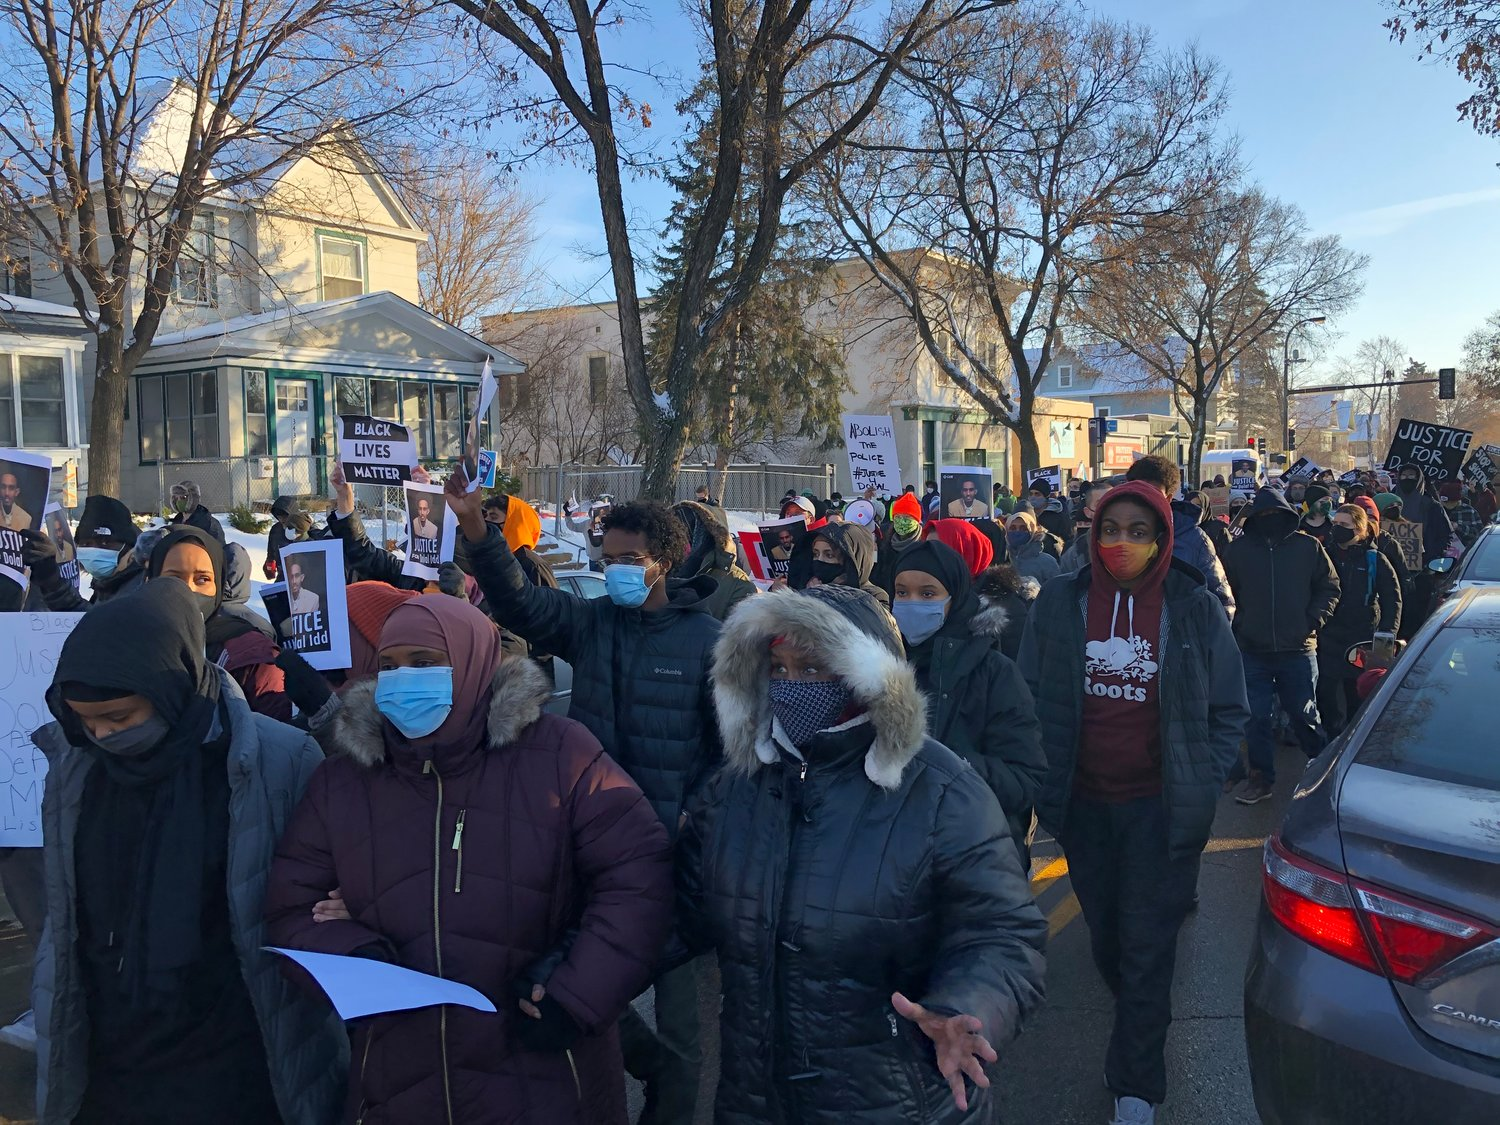 On Jan. 3, 2021, protestors marched from 36th and Cedar to E. Lake S. and back demanding justice and transparency. (Photos by Jill Boogren)